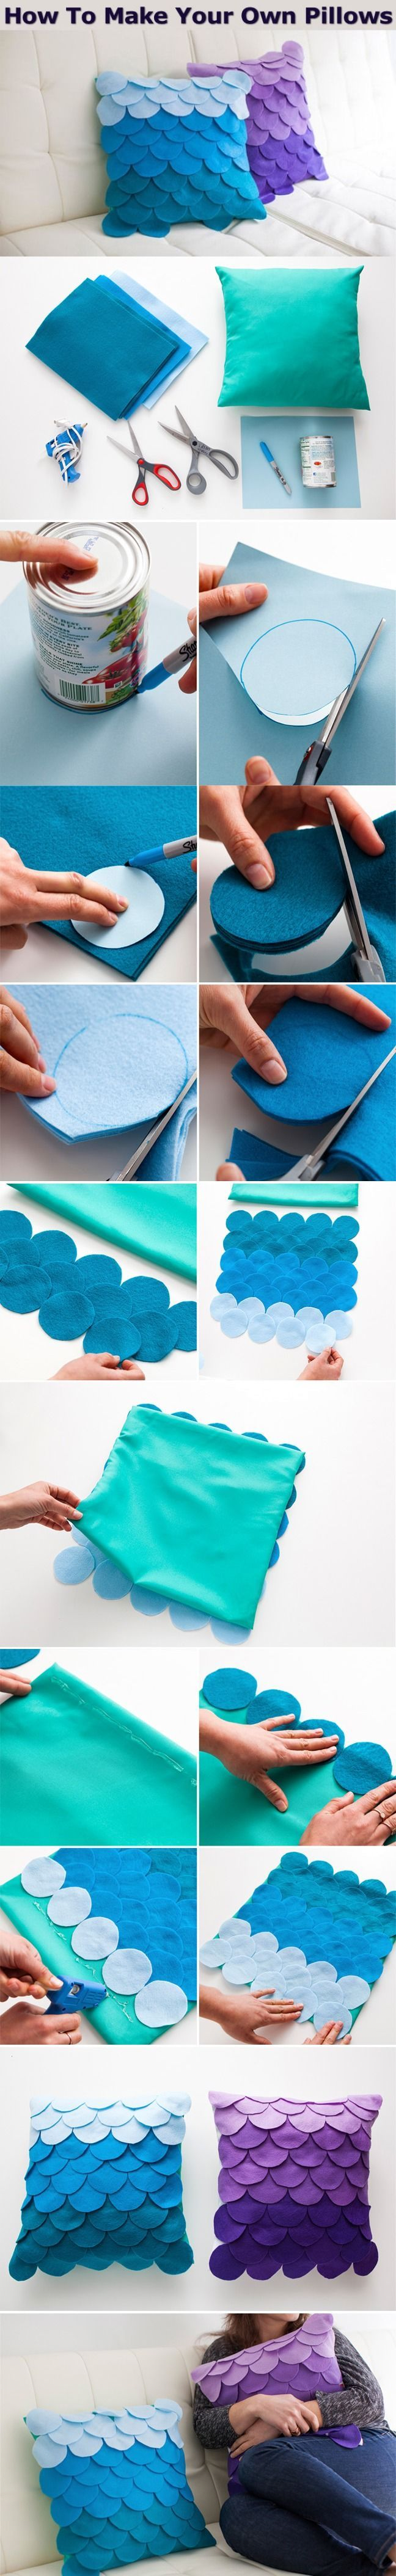 How To Make Your Own Pillows Pictures, Photos, and Images for Facebook, Tumblr, Pinterest, and Twitter